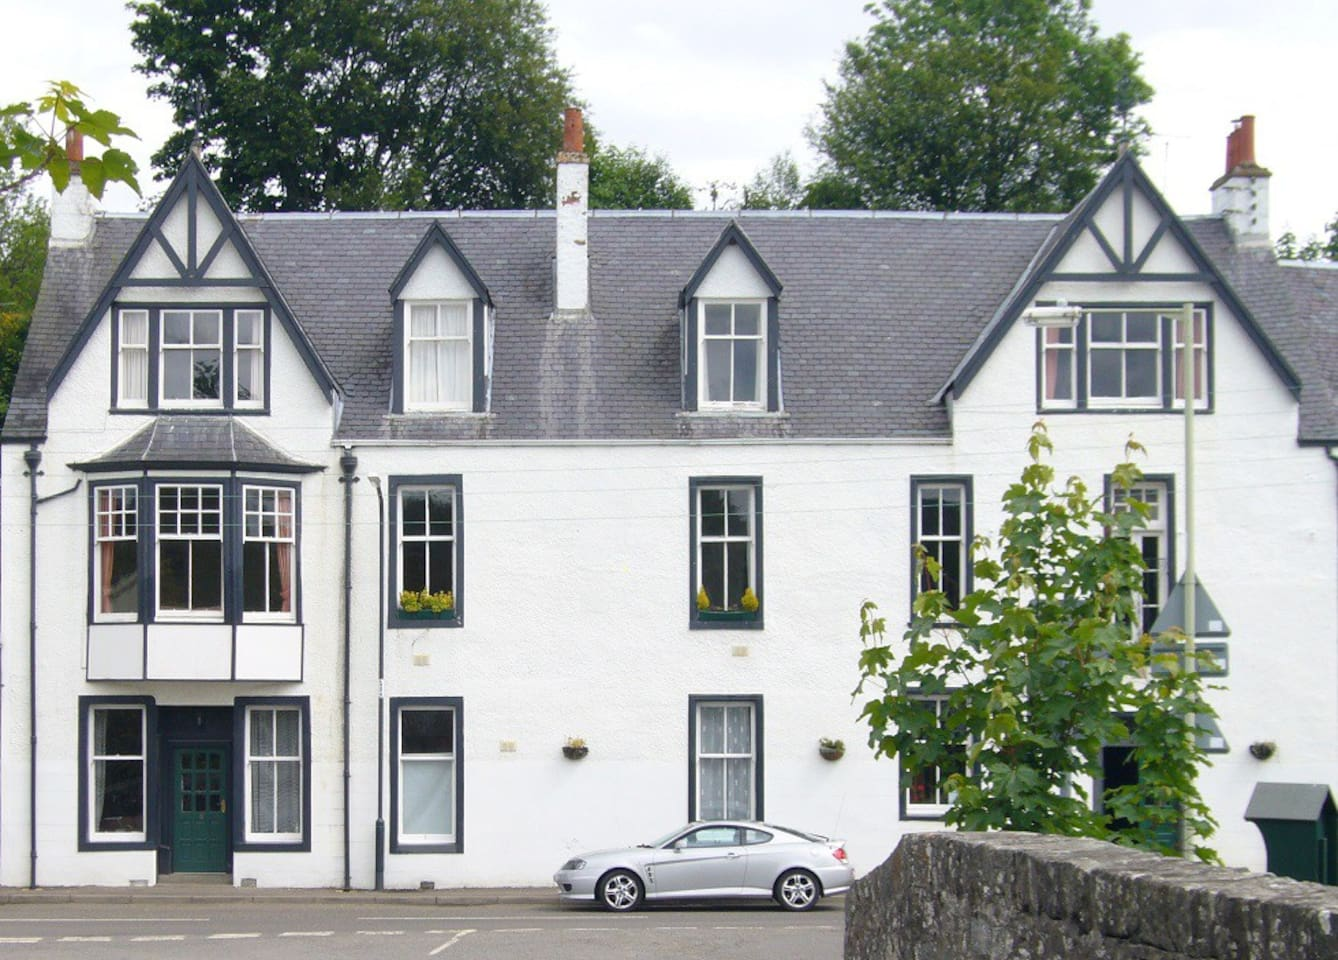 Apartments converted from traditional coaching Inn in the heart of the village.